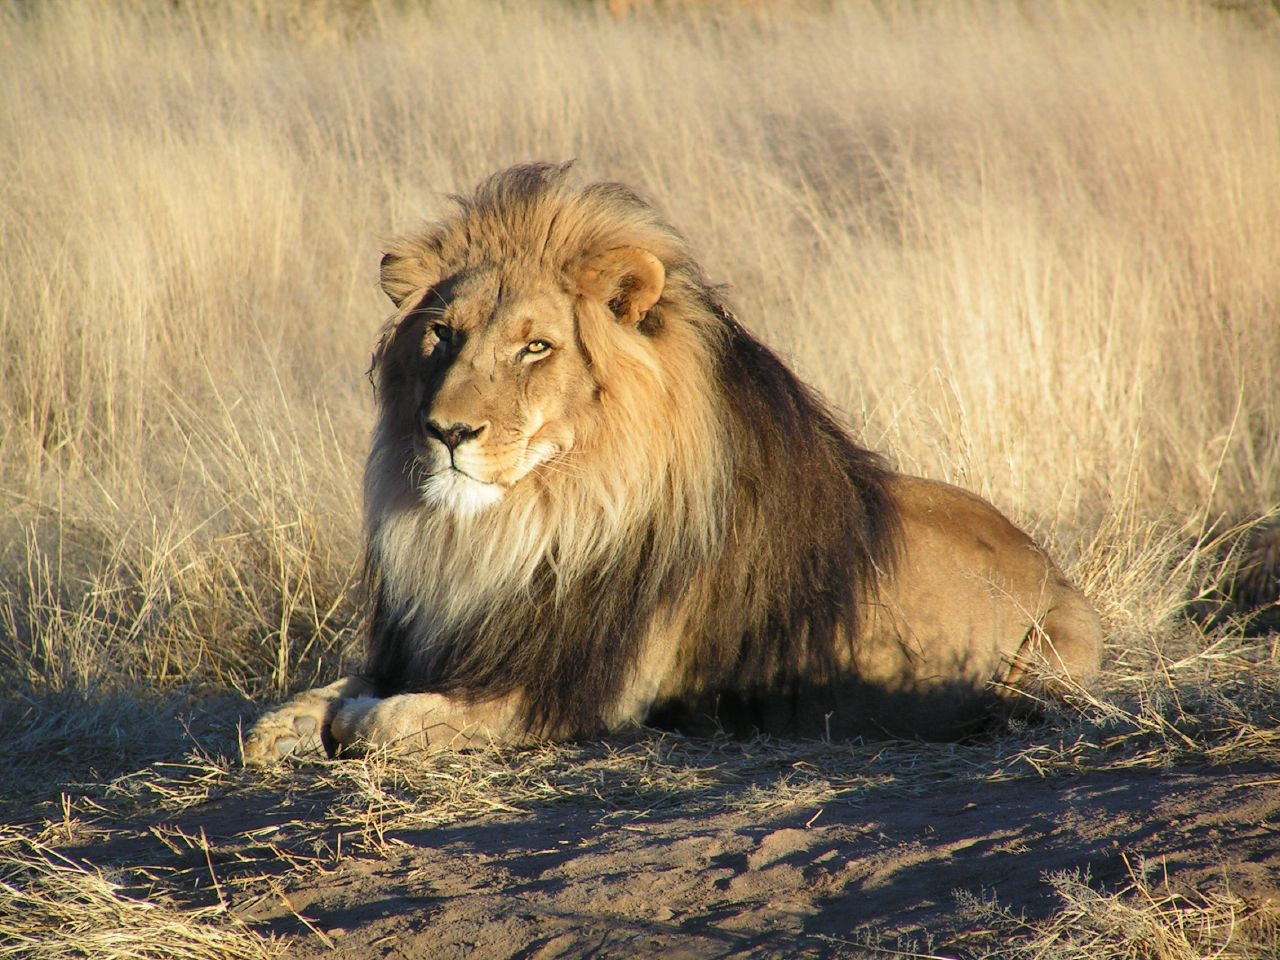 Jpg Images Free Lion waiting in Namibia jpg